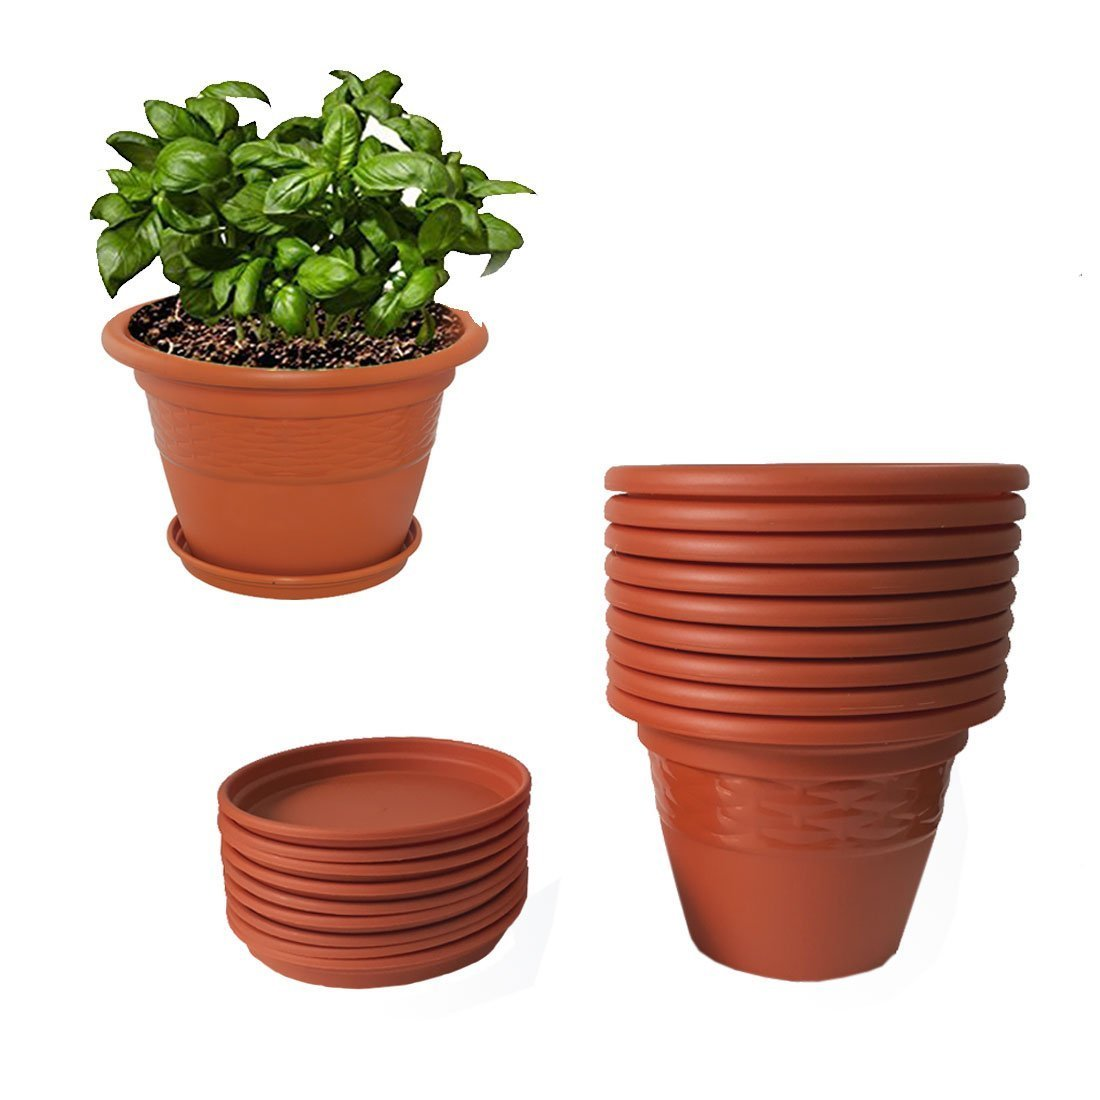 Meded Siti Plast 10 Inch Heavy Duty Plastic Planter Pots With Bottom Tray (Pack Of 9) Colour - Terracotta product image